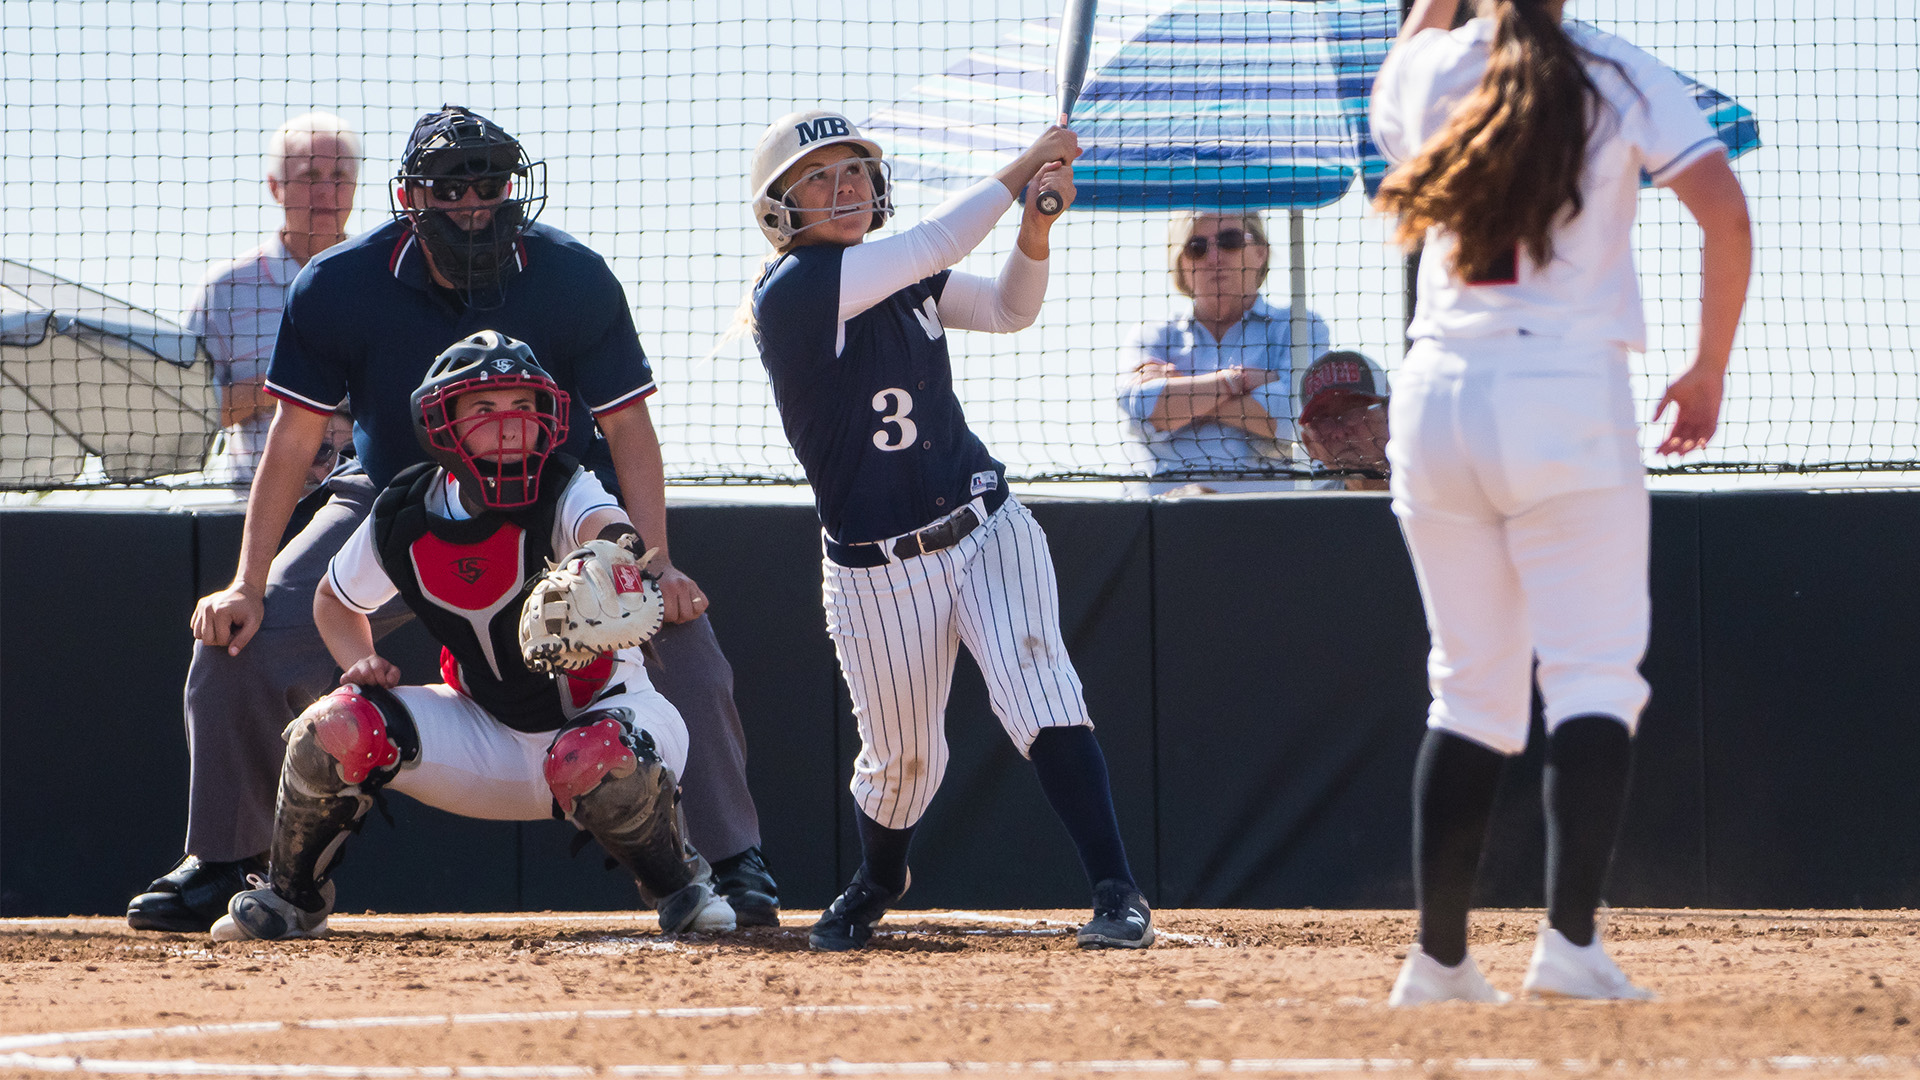 Courtney Hennings Softball Csu Monterey Bay Athletics